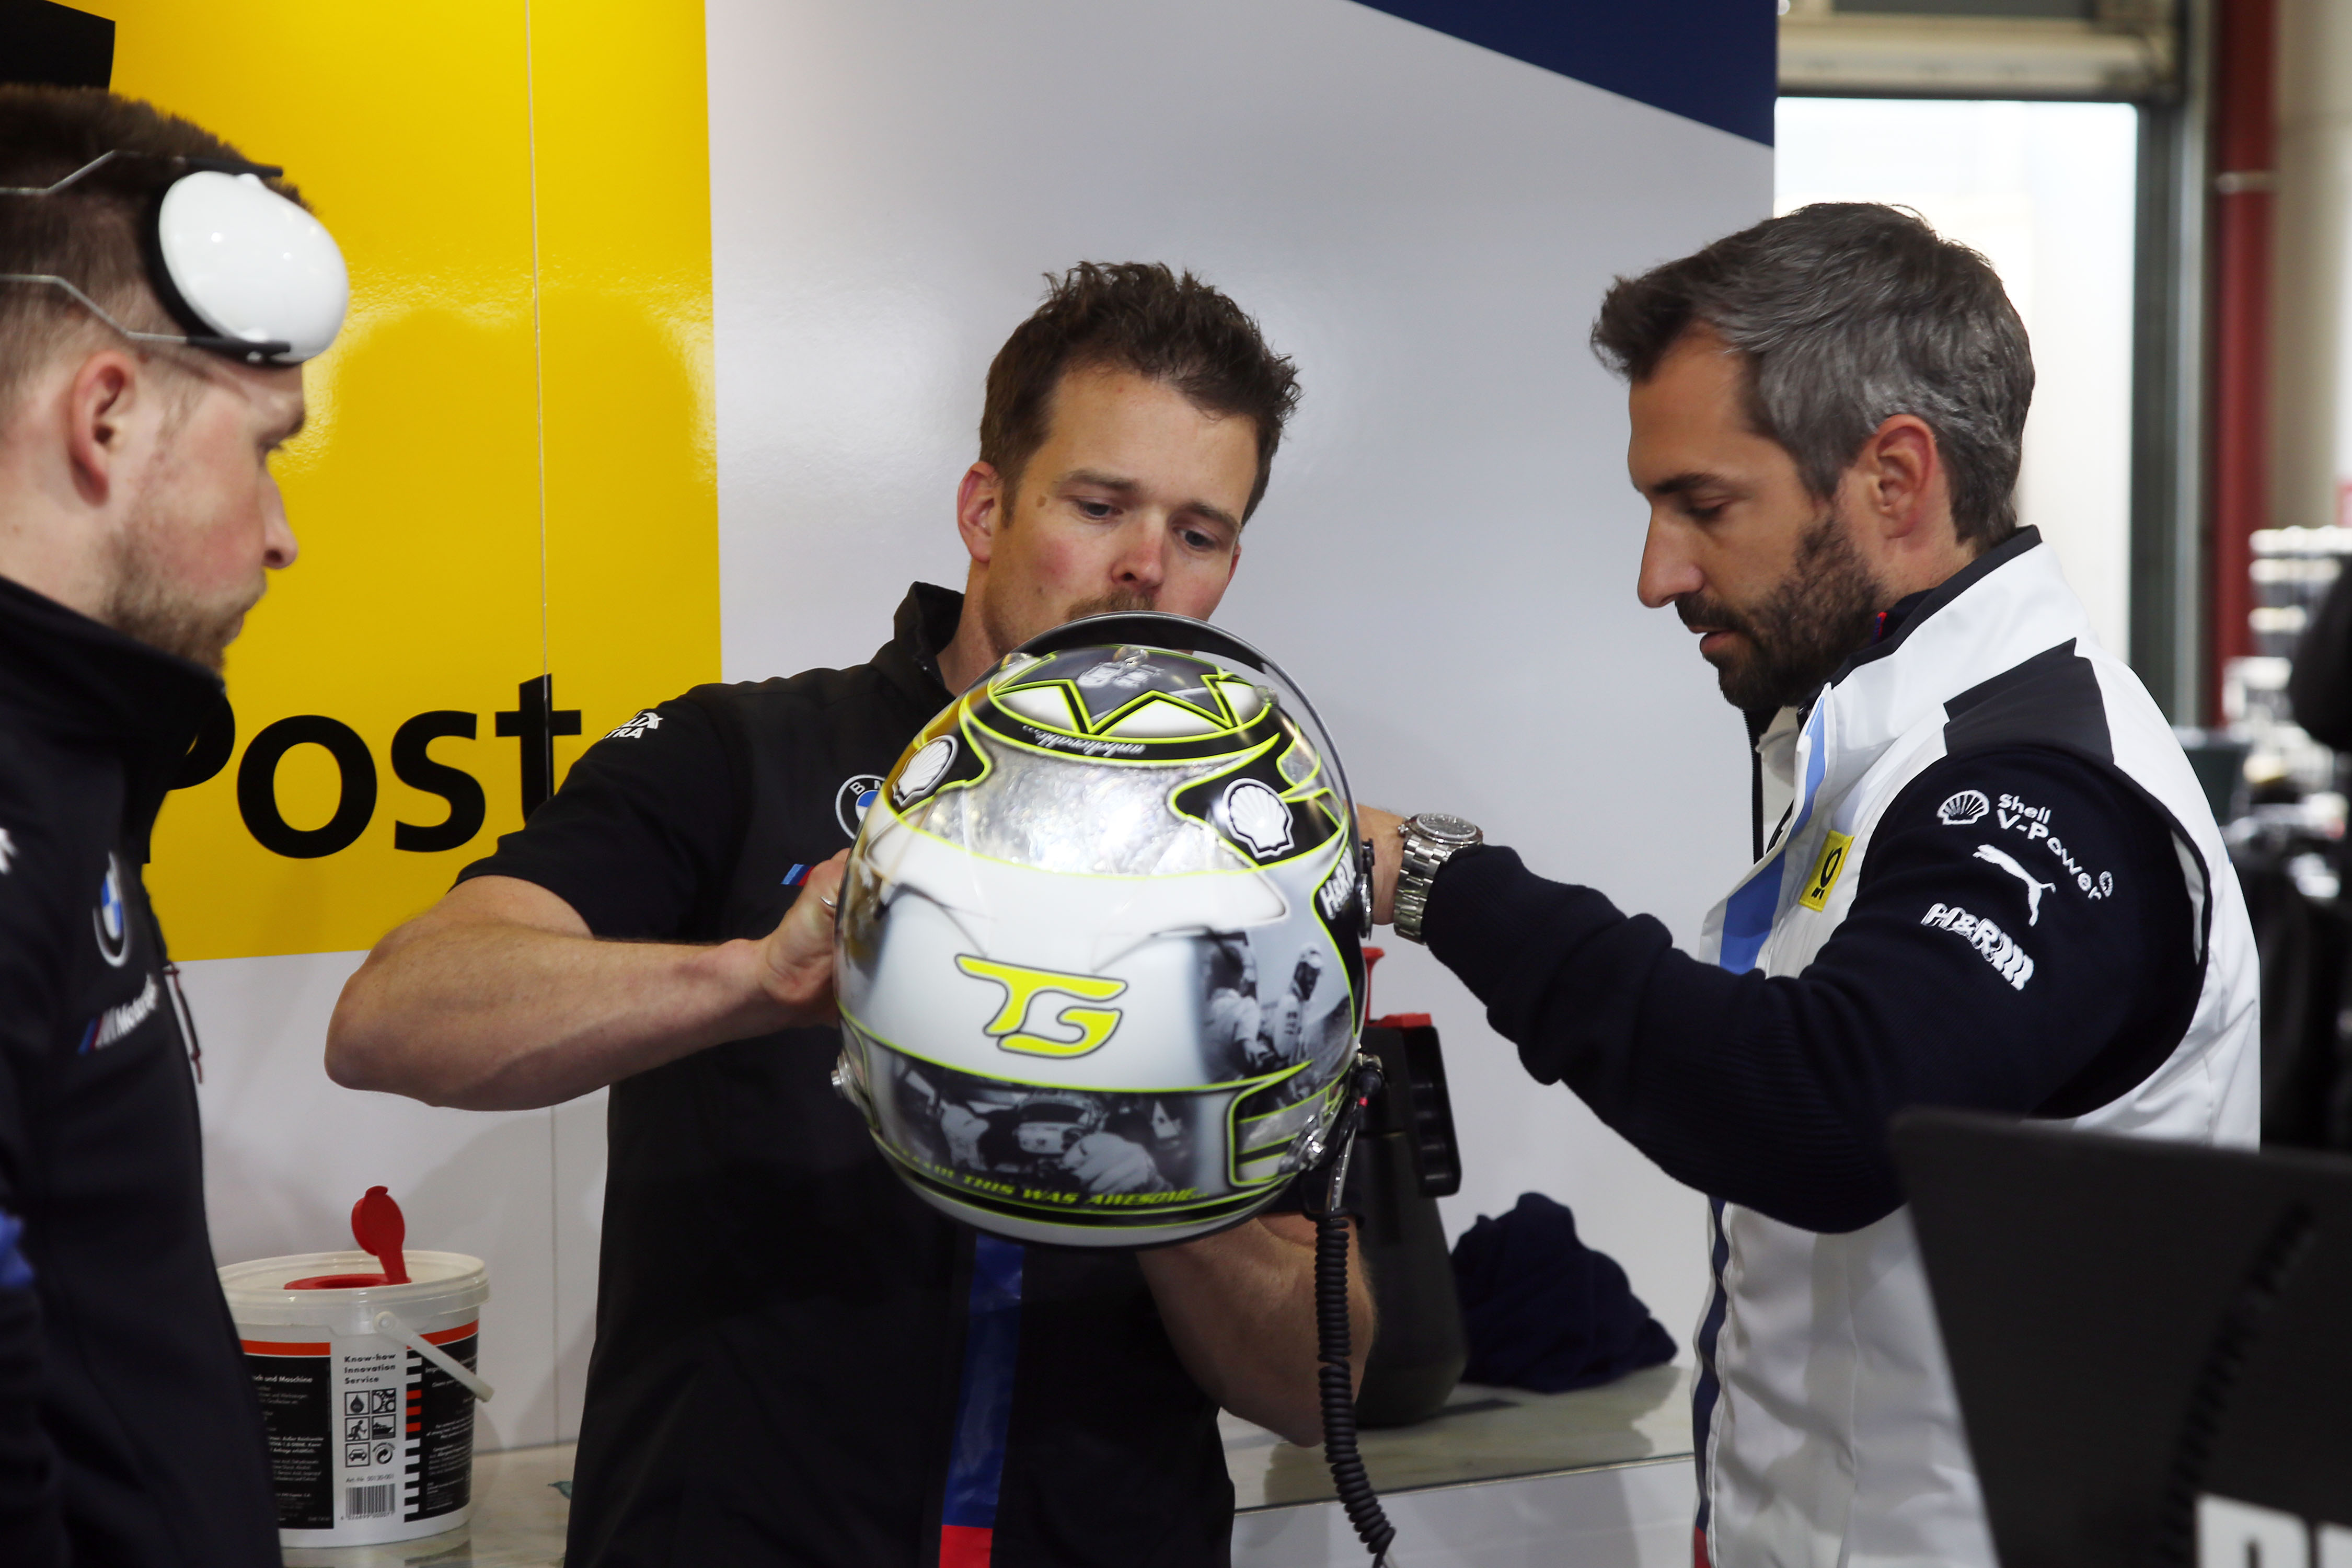 "Lausitzring (GER) 18th May 2018. BMW Motorsport, BMW Team RMR Mechanics and Timo Glock (GER) with special edition helmet ""Hockenheim 2018"" for charity."